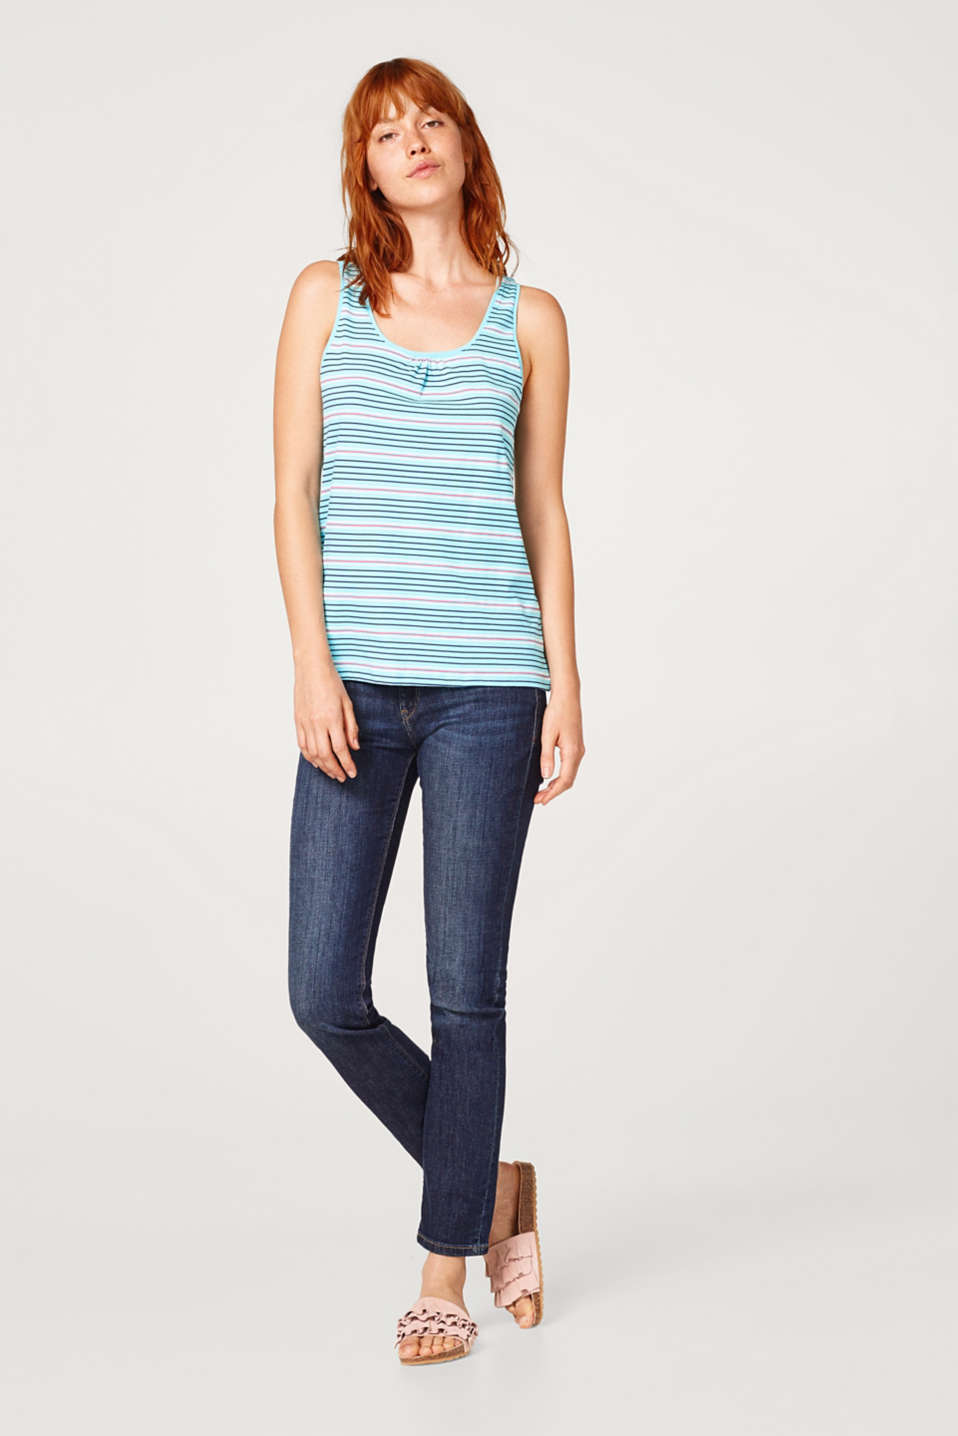 Cotton vest with printed stripes